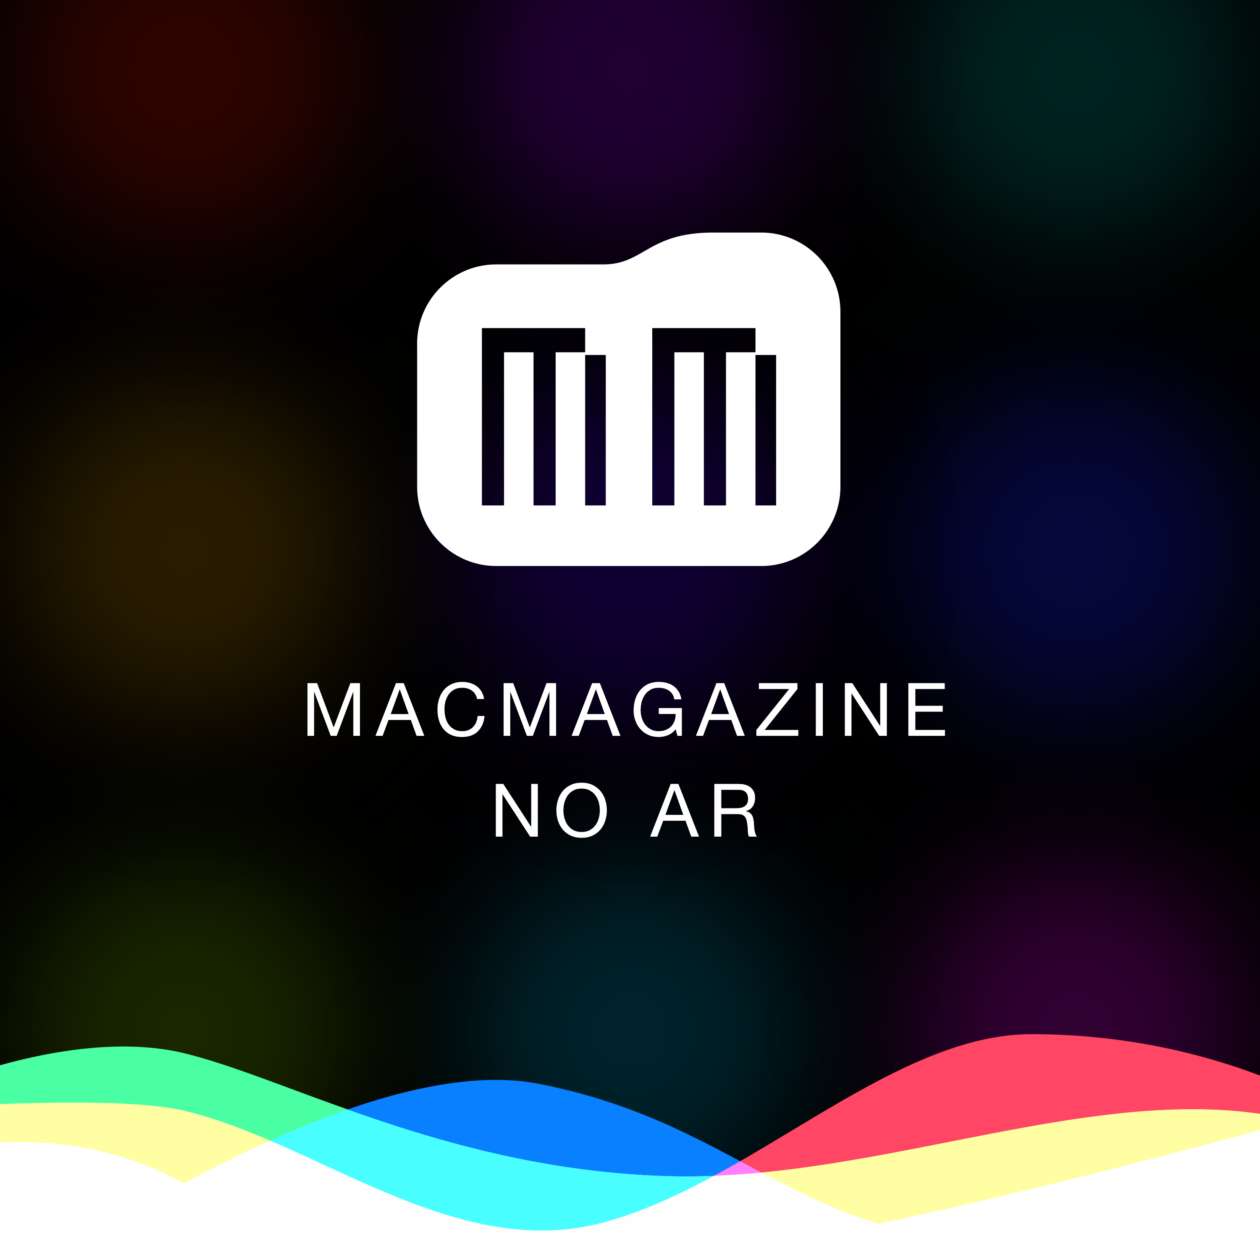 Nova capa do podcast - MacMagazine no Ar